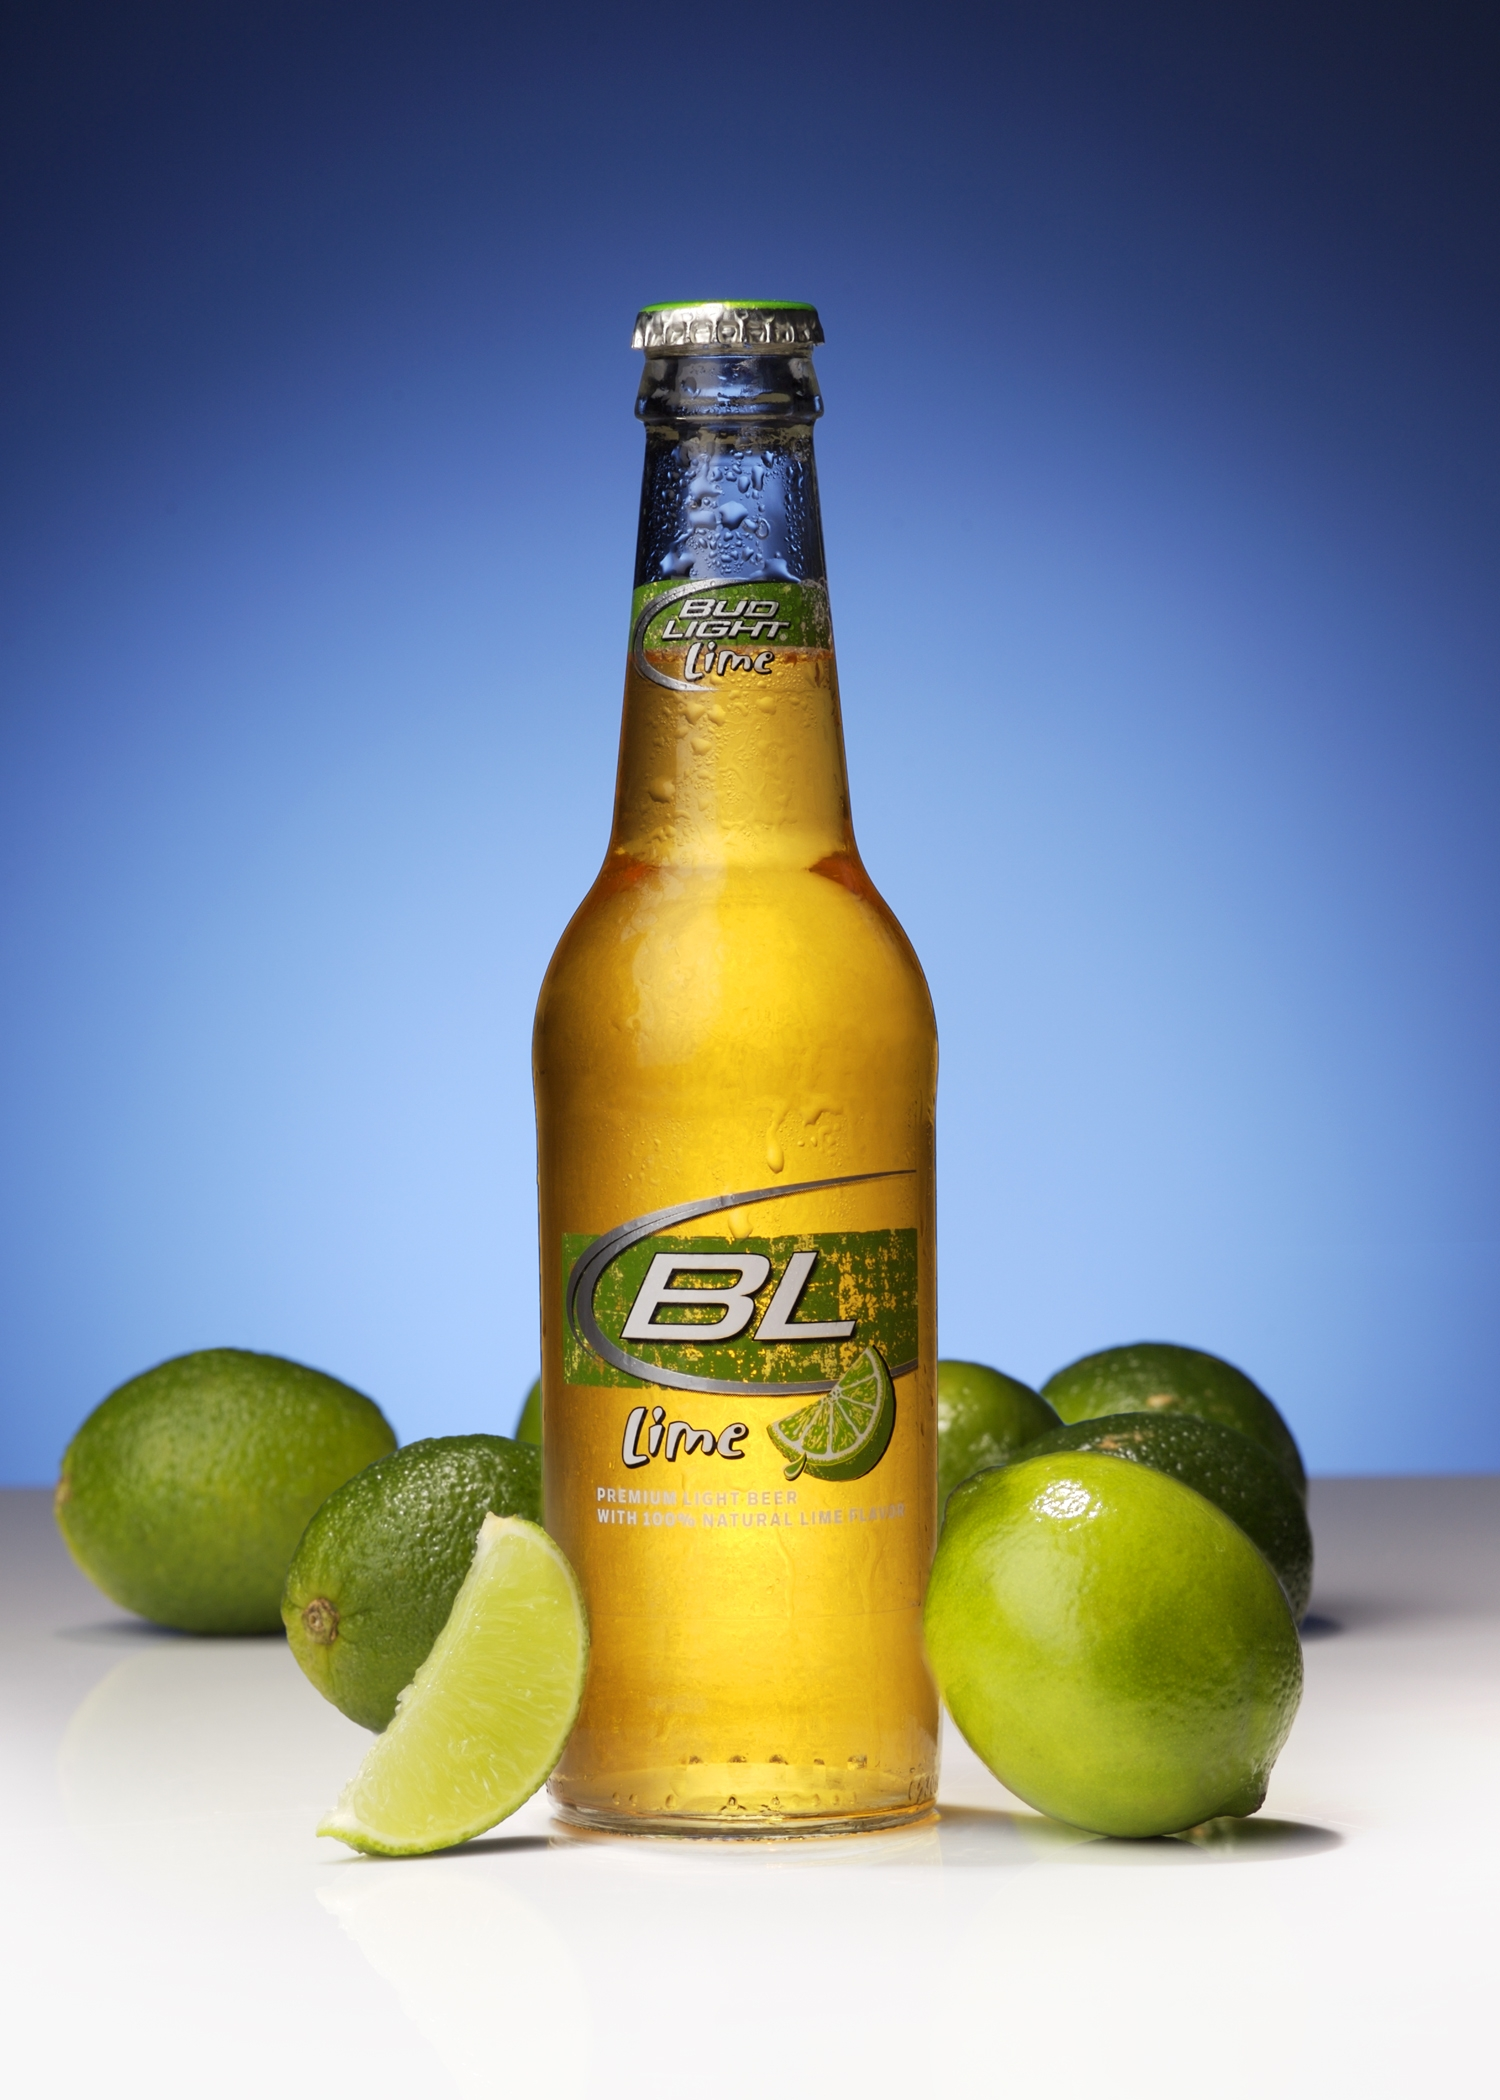 How Many Calories In A Bud Light Lime Bottle